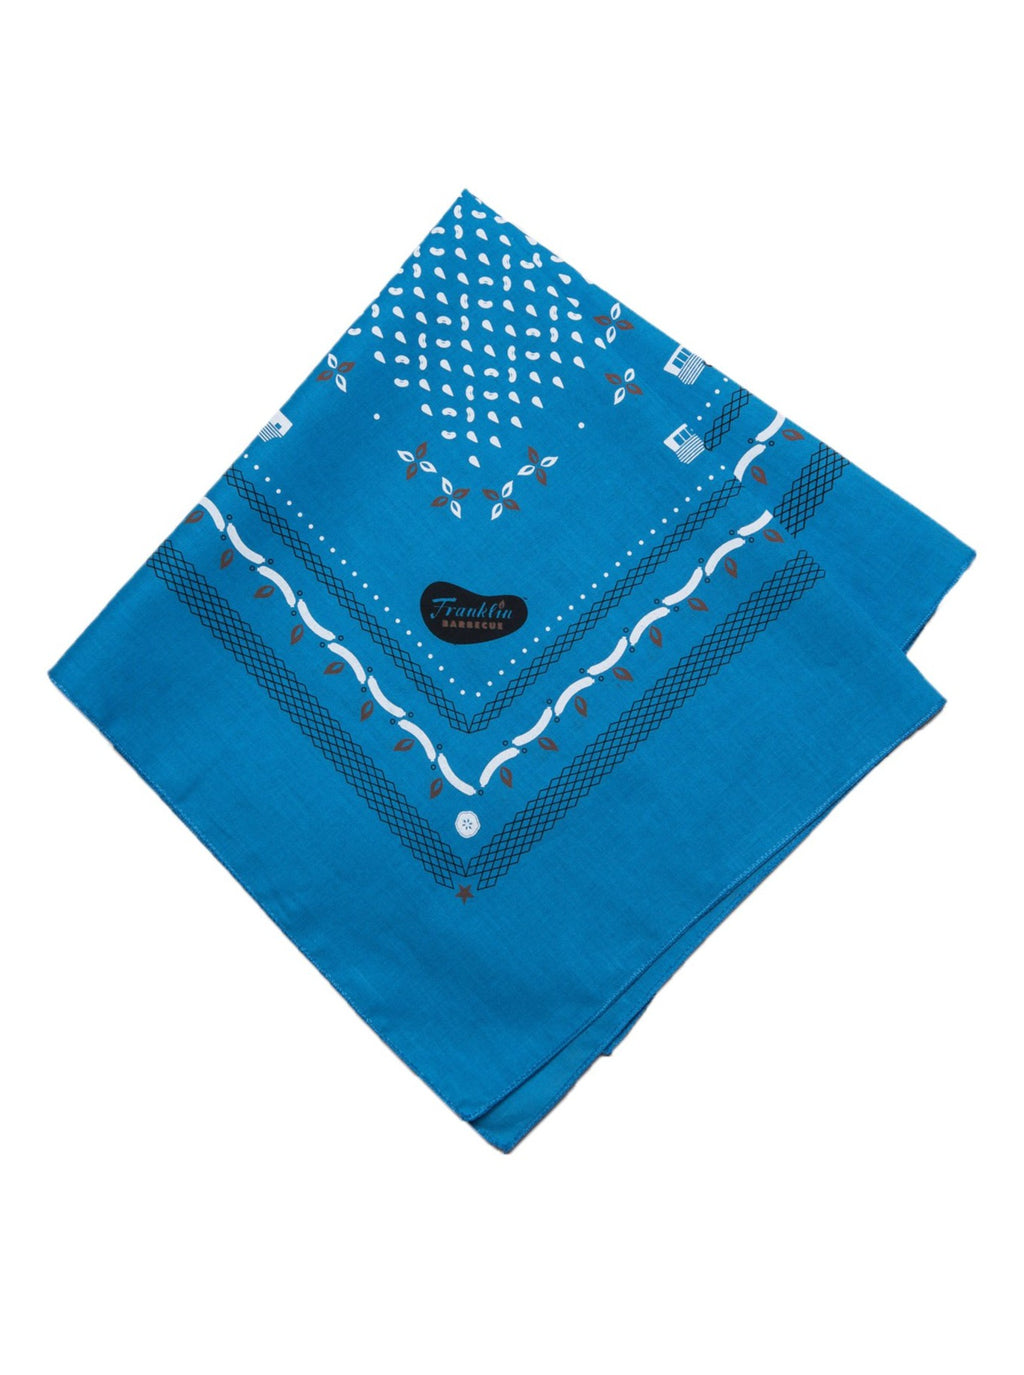 Franklin Barbecue Bandana